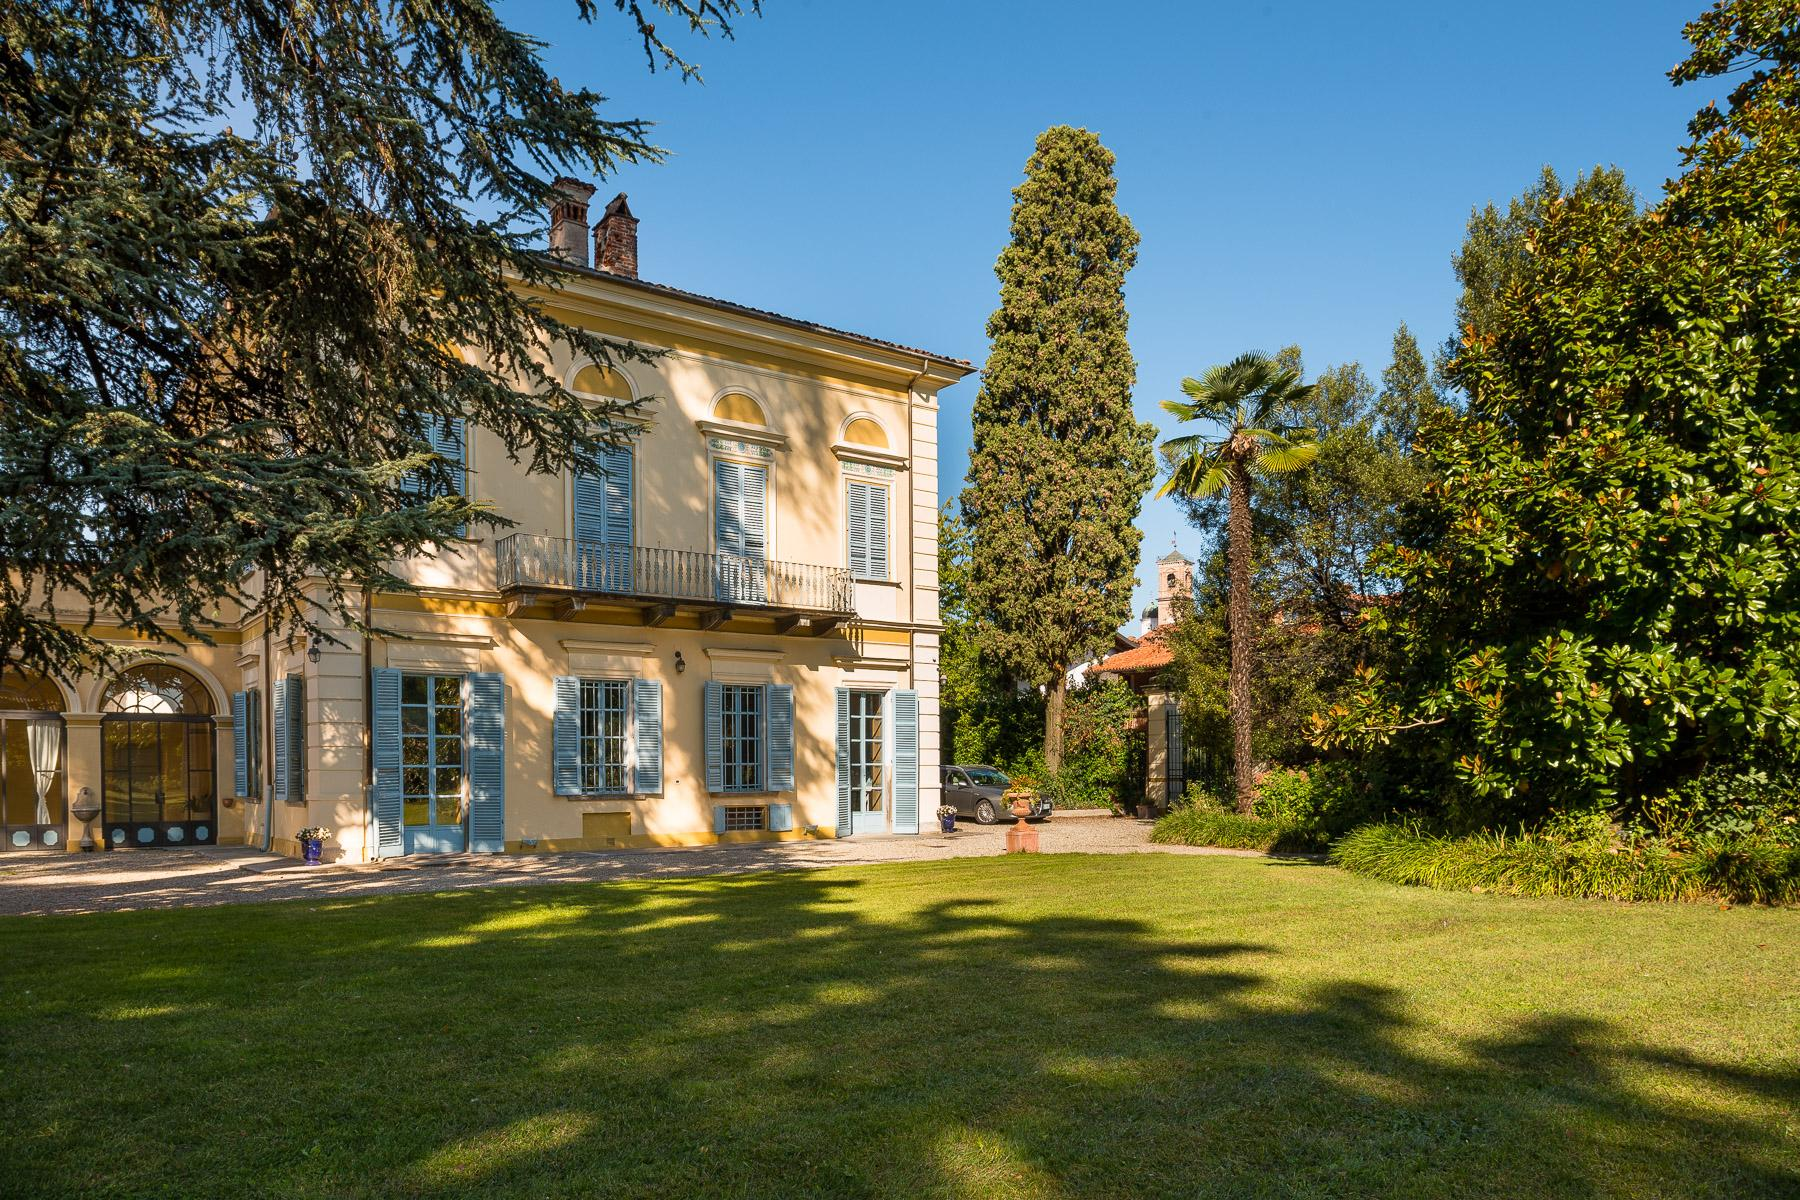 Elegant Villa in the Canavese countryside - 15